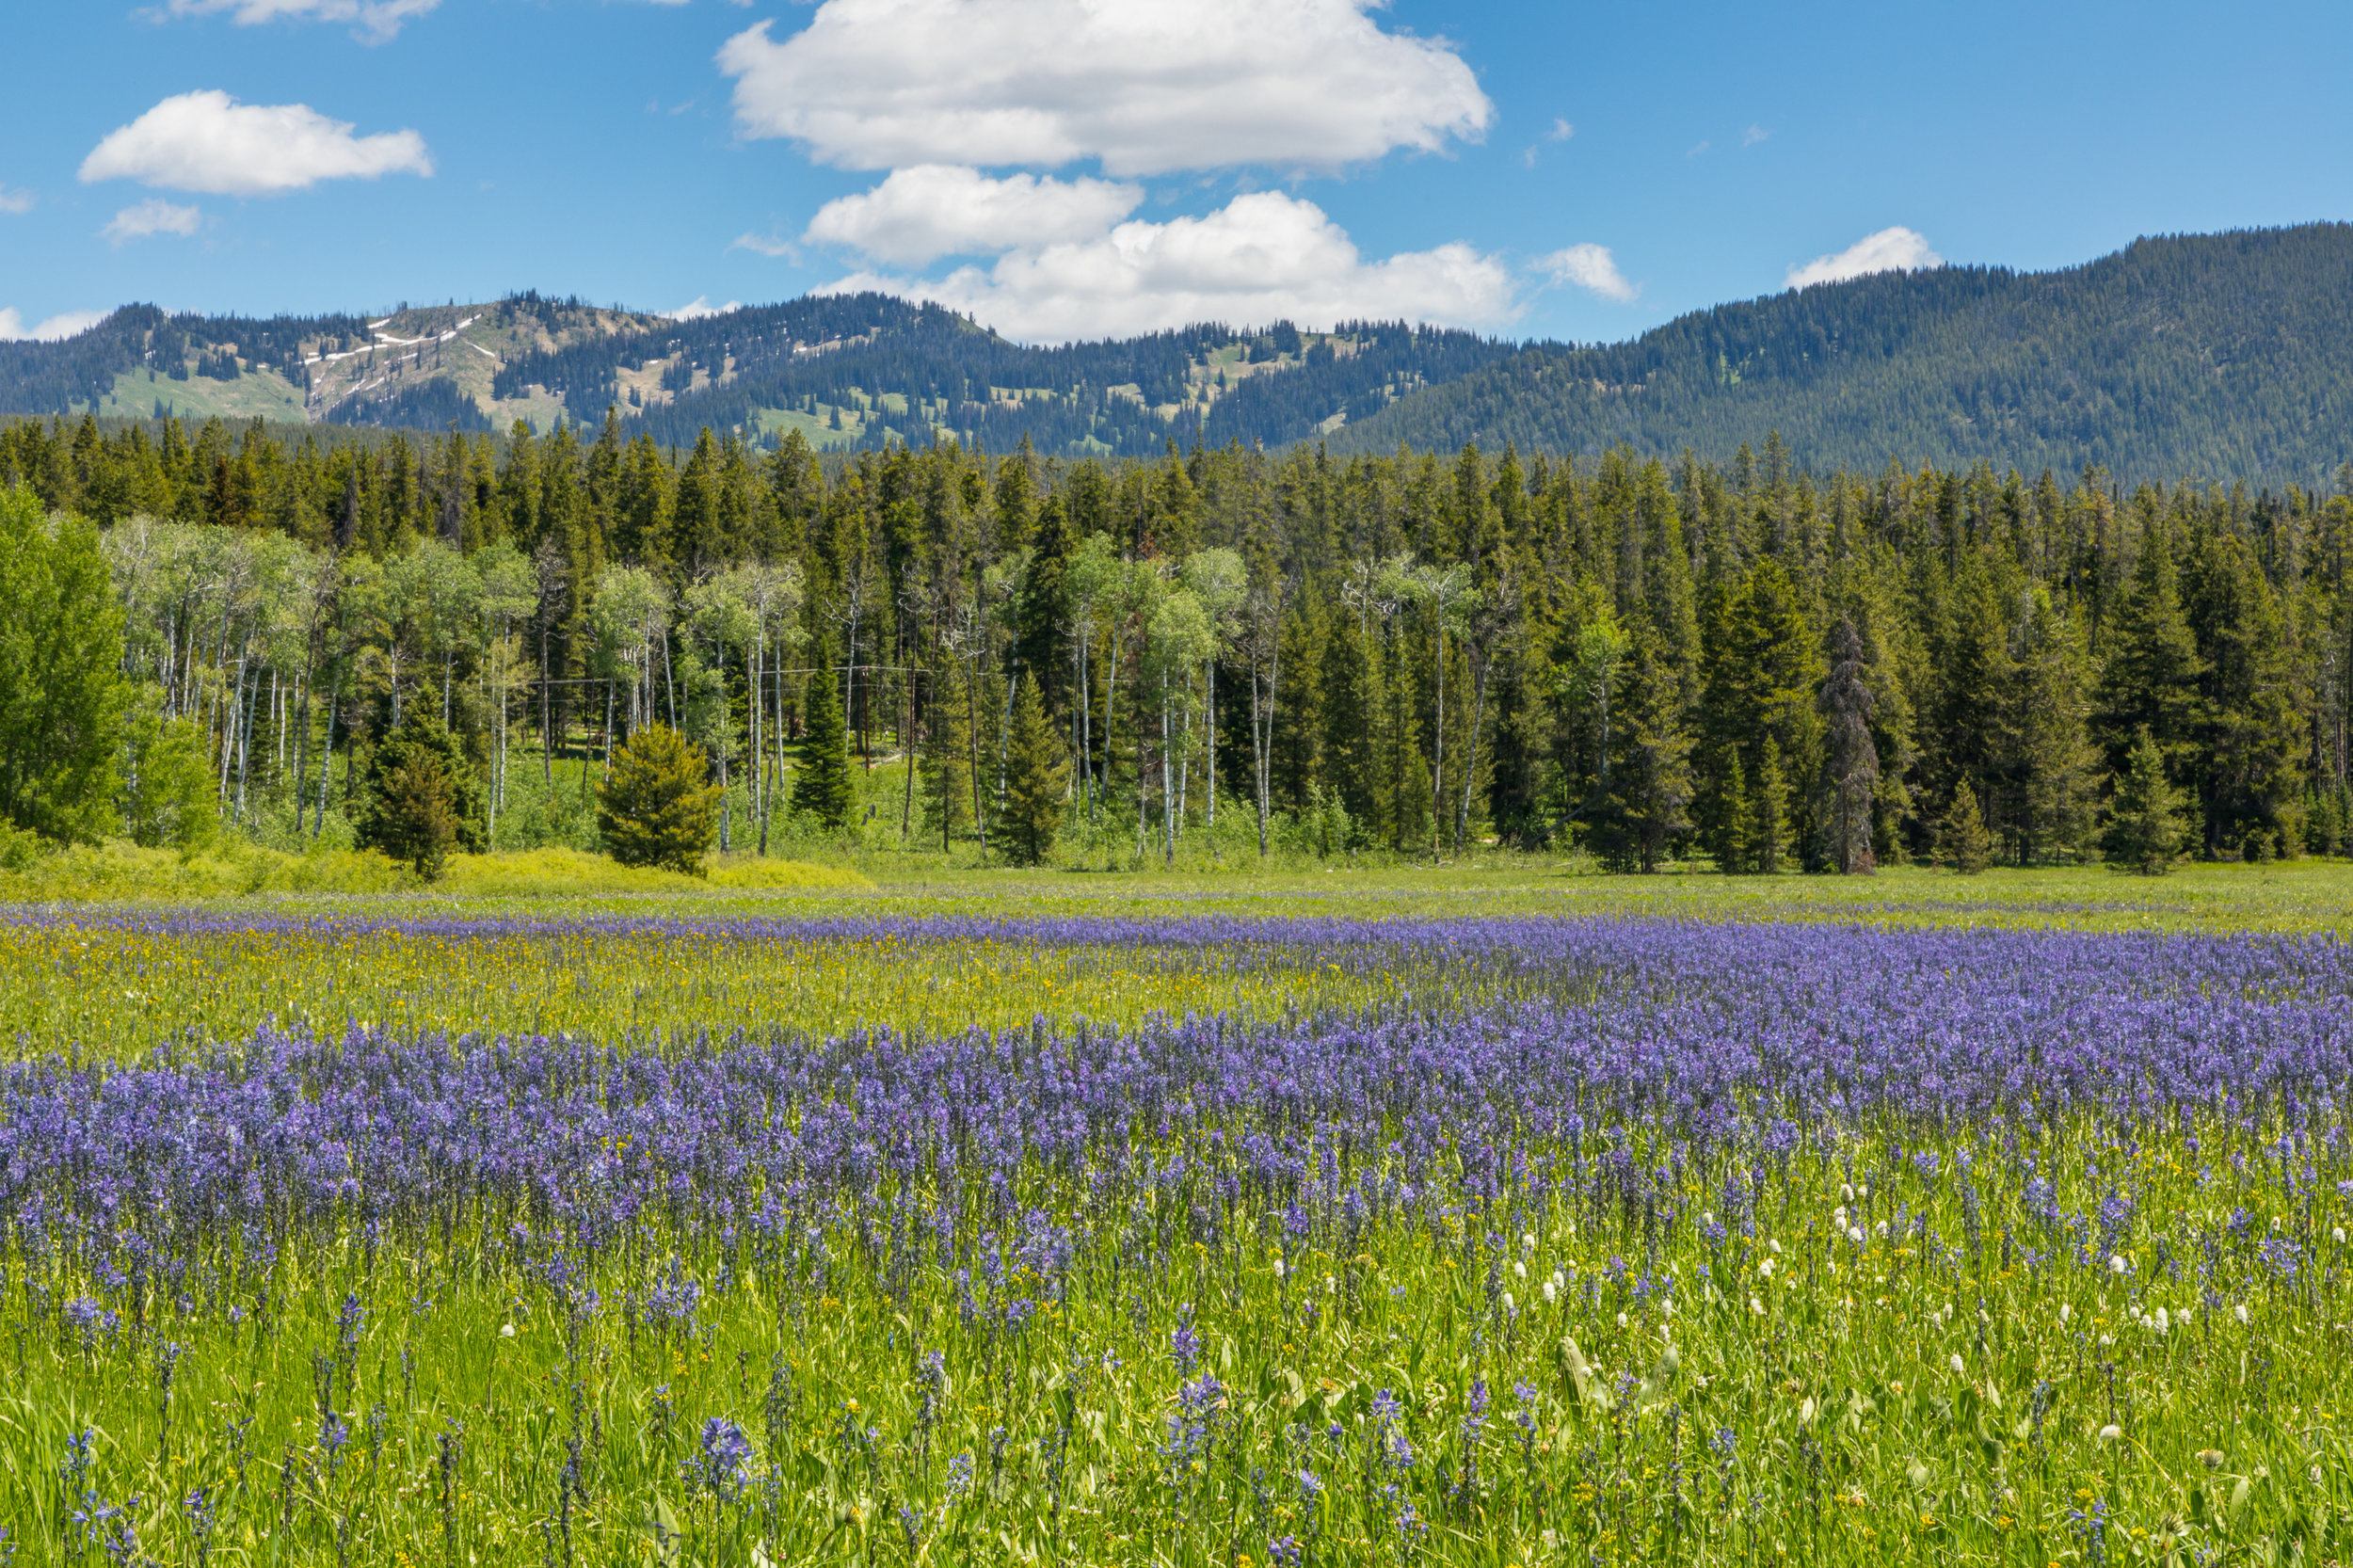 Wildflower Field in Grand Teton National Park, Image # 7872